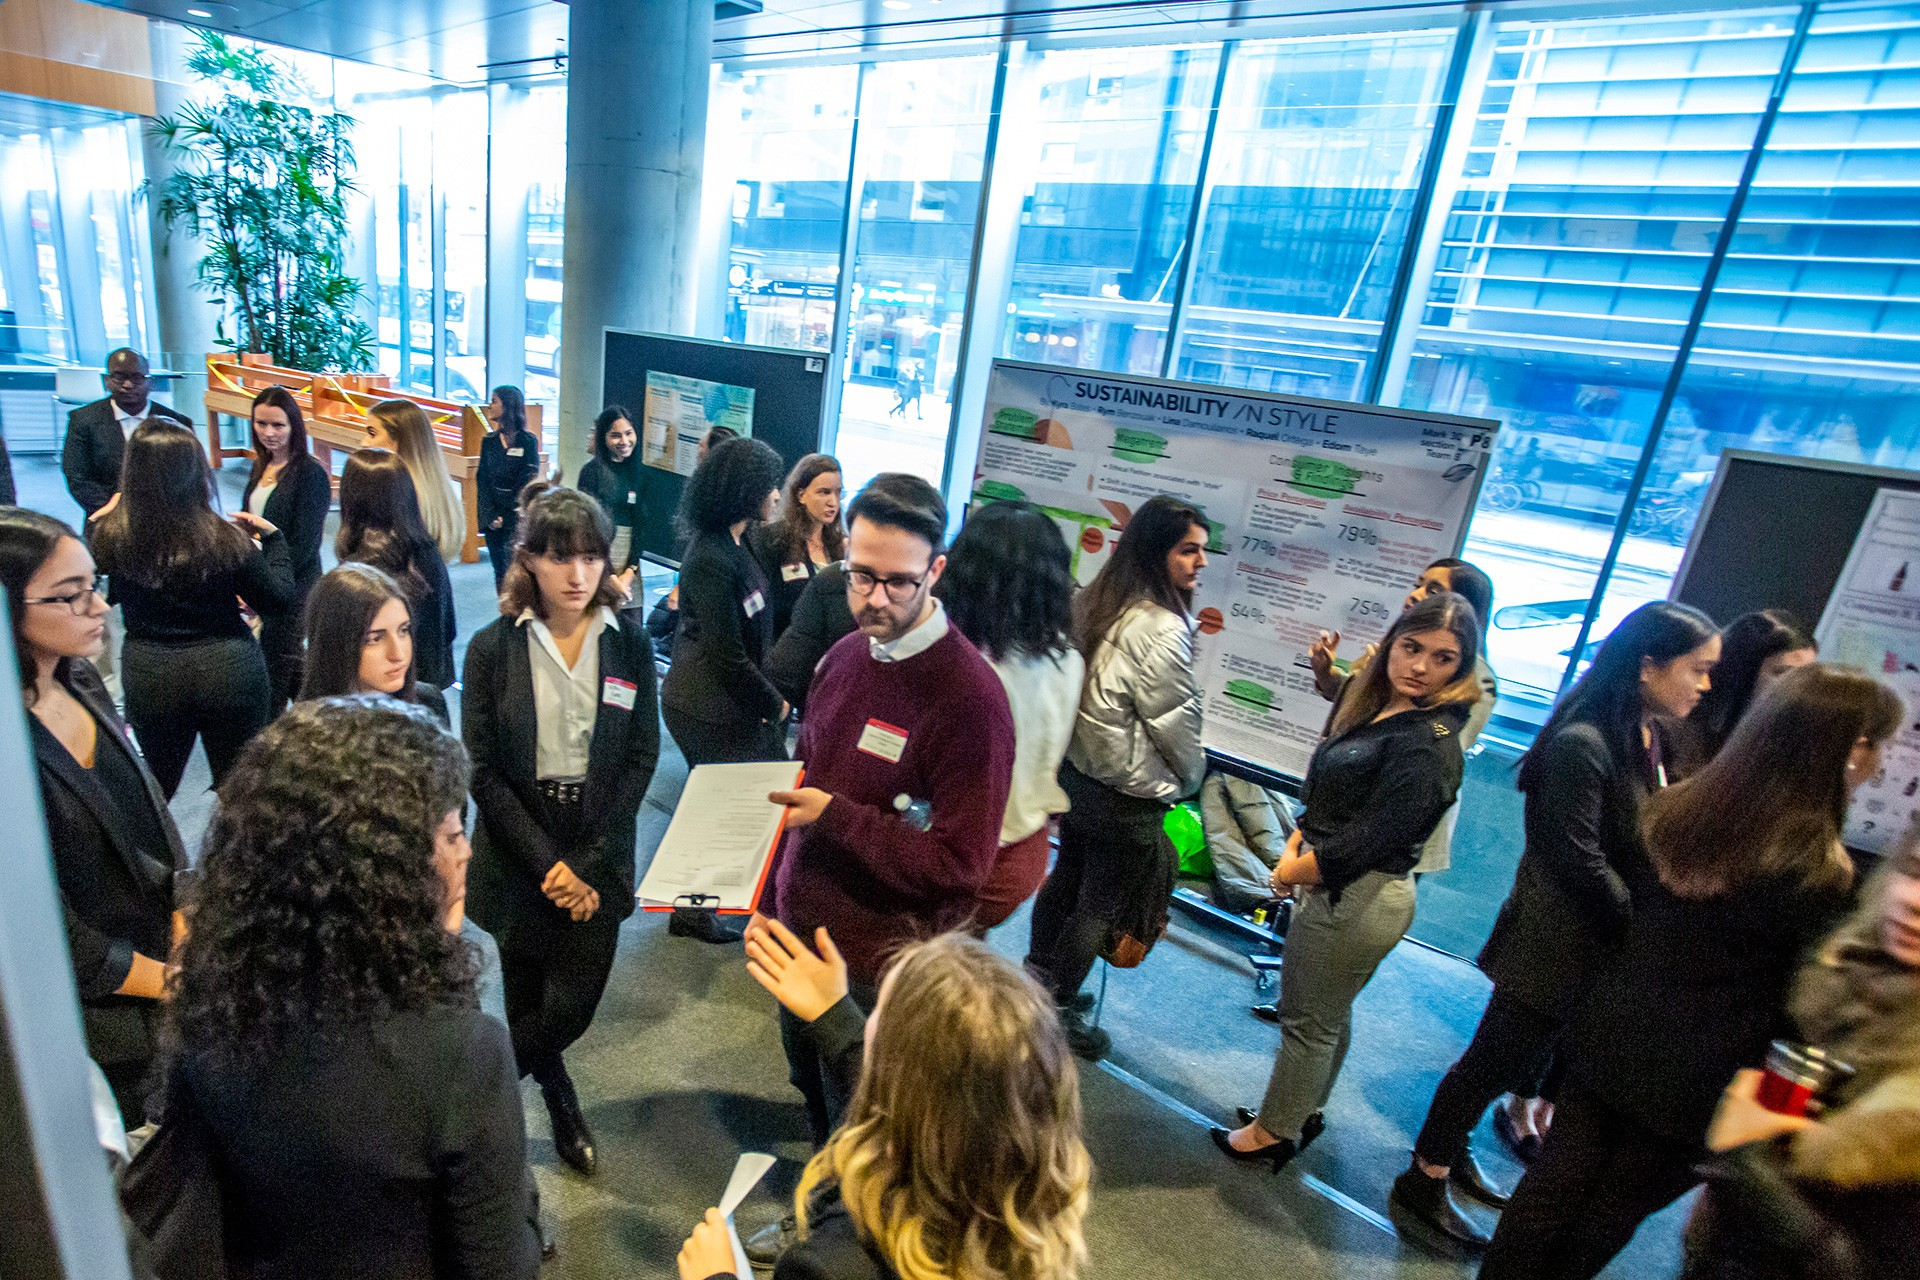 The 2019 Consumer Behaviour Poster Session